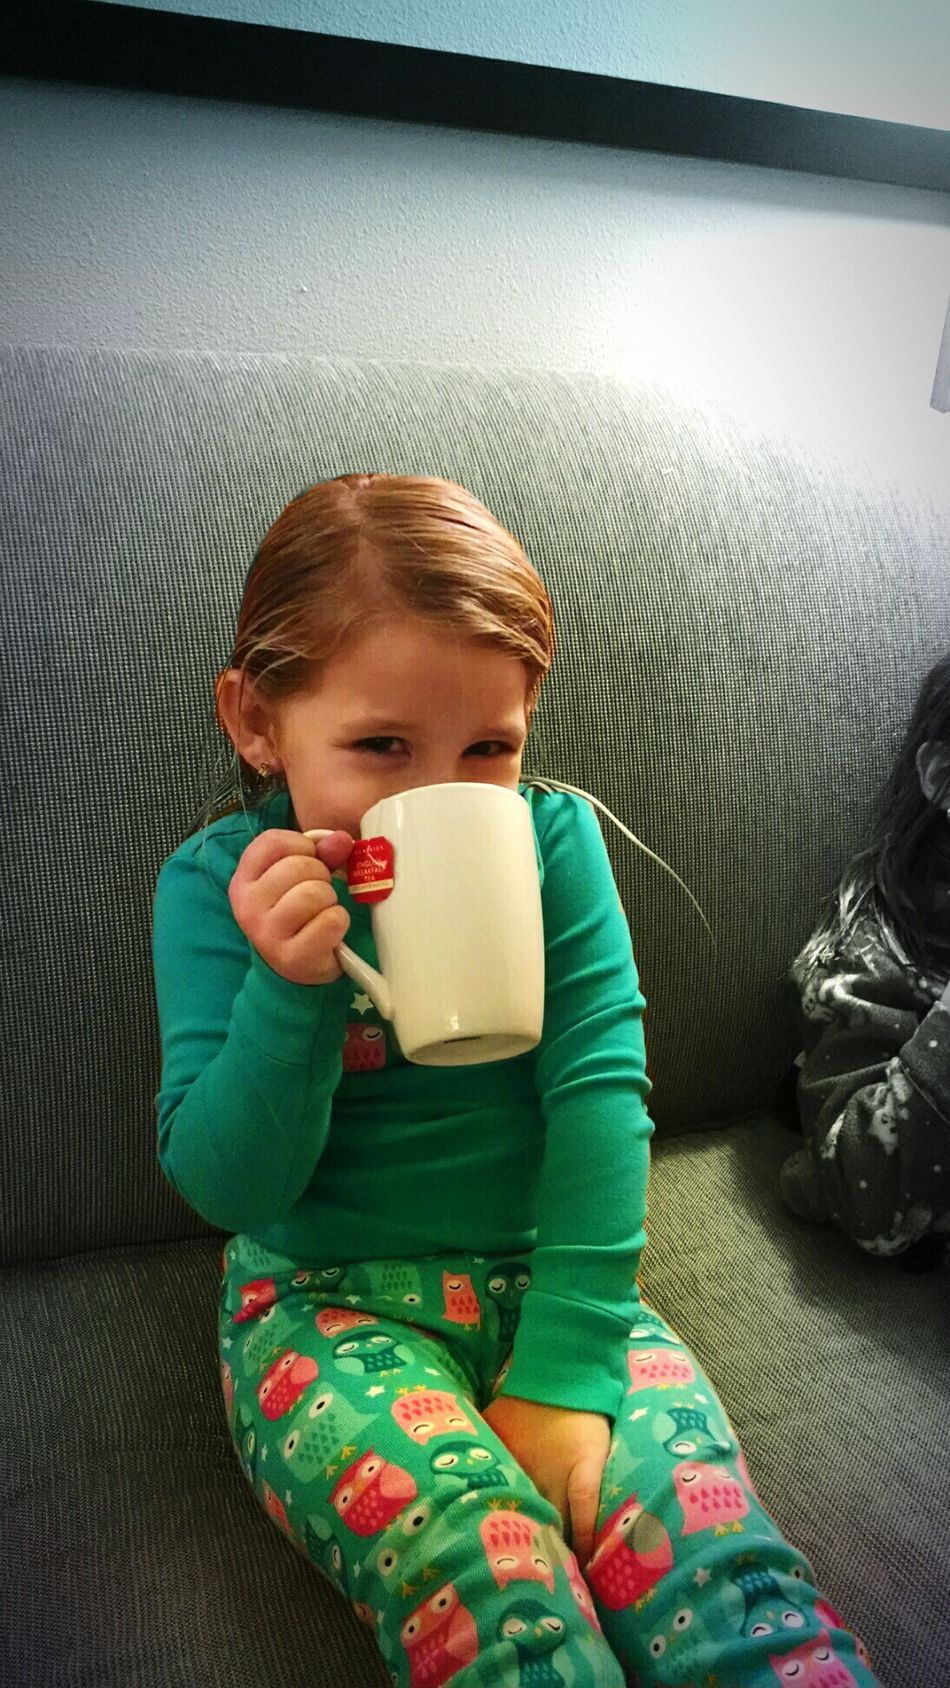 My Cousin drinking hot chocolate like its Tea. Adorable Kids Beautiful Family Cutiepie Blondie Beautiful Girl Adorable Smile